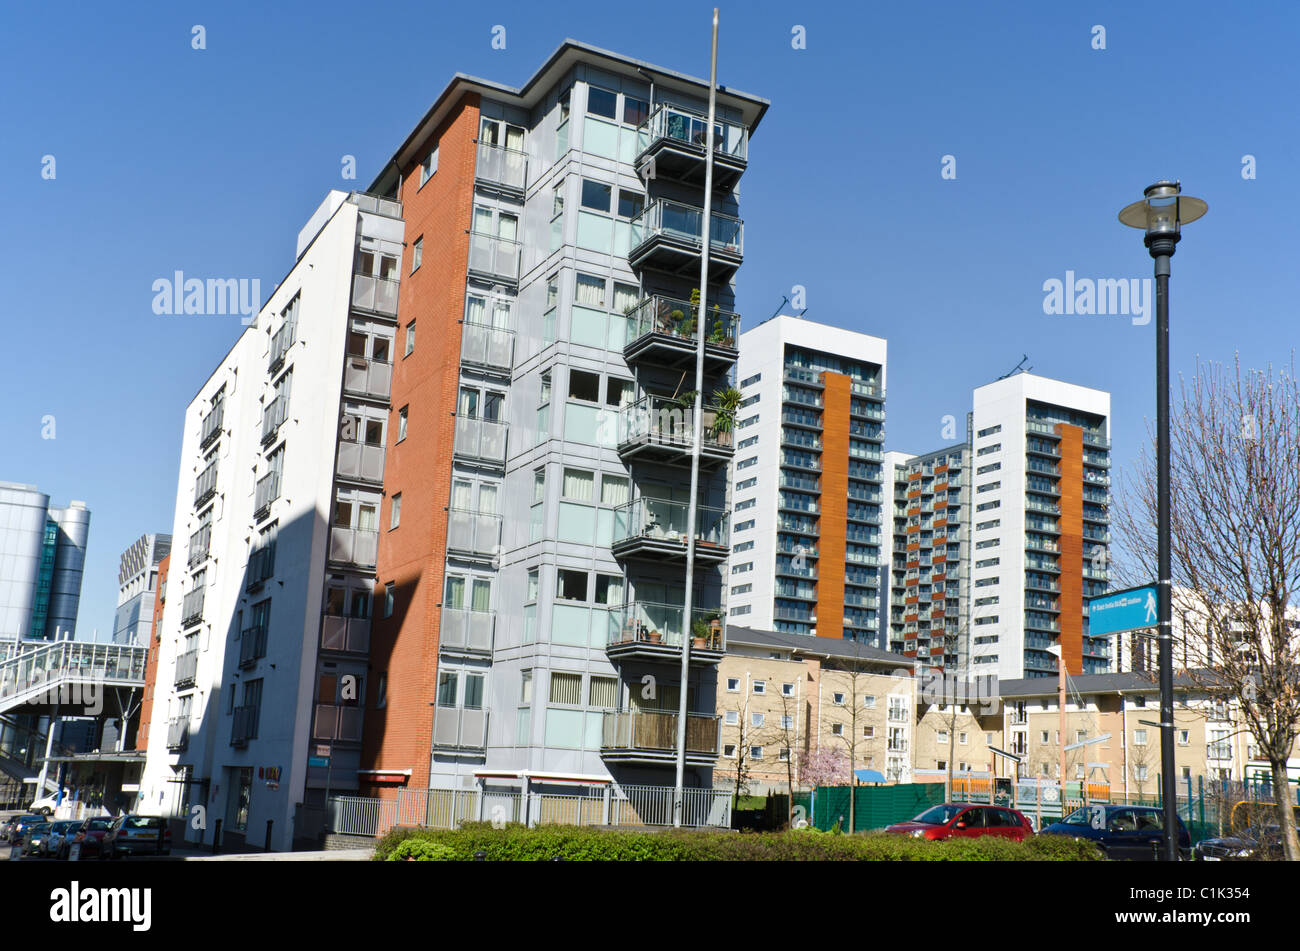 Explorers Court, East India Dock Apartment blocks Poplar E14, London. - Stock Image